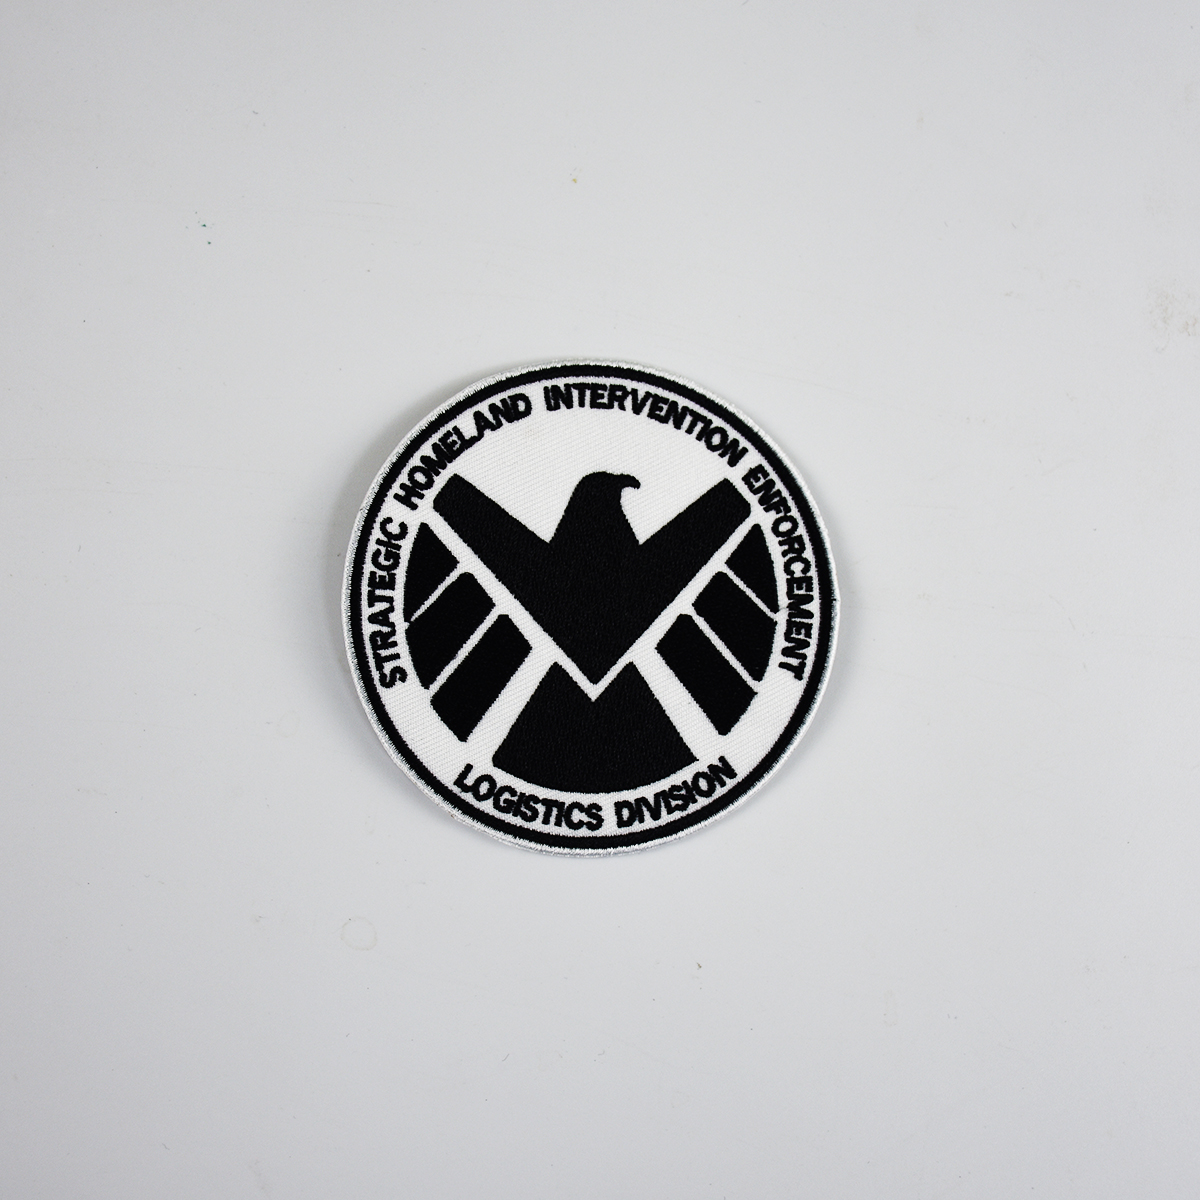 Uniform Patch Aufnäher neu AVENGERS AGENTS OF SHIELD TV Logistics Division